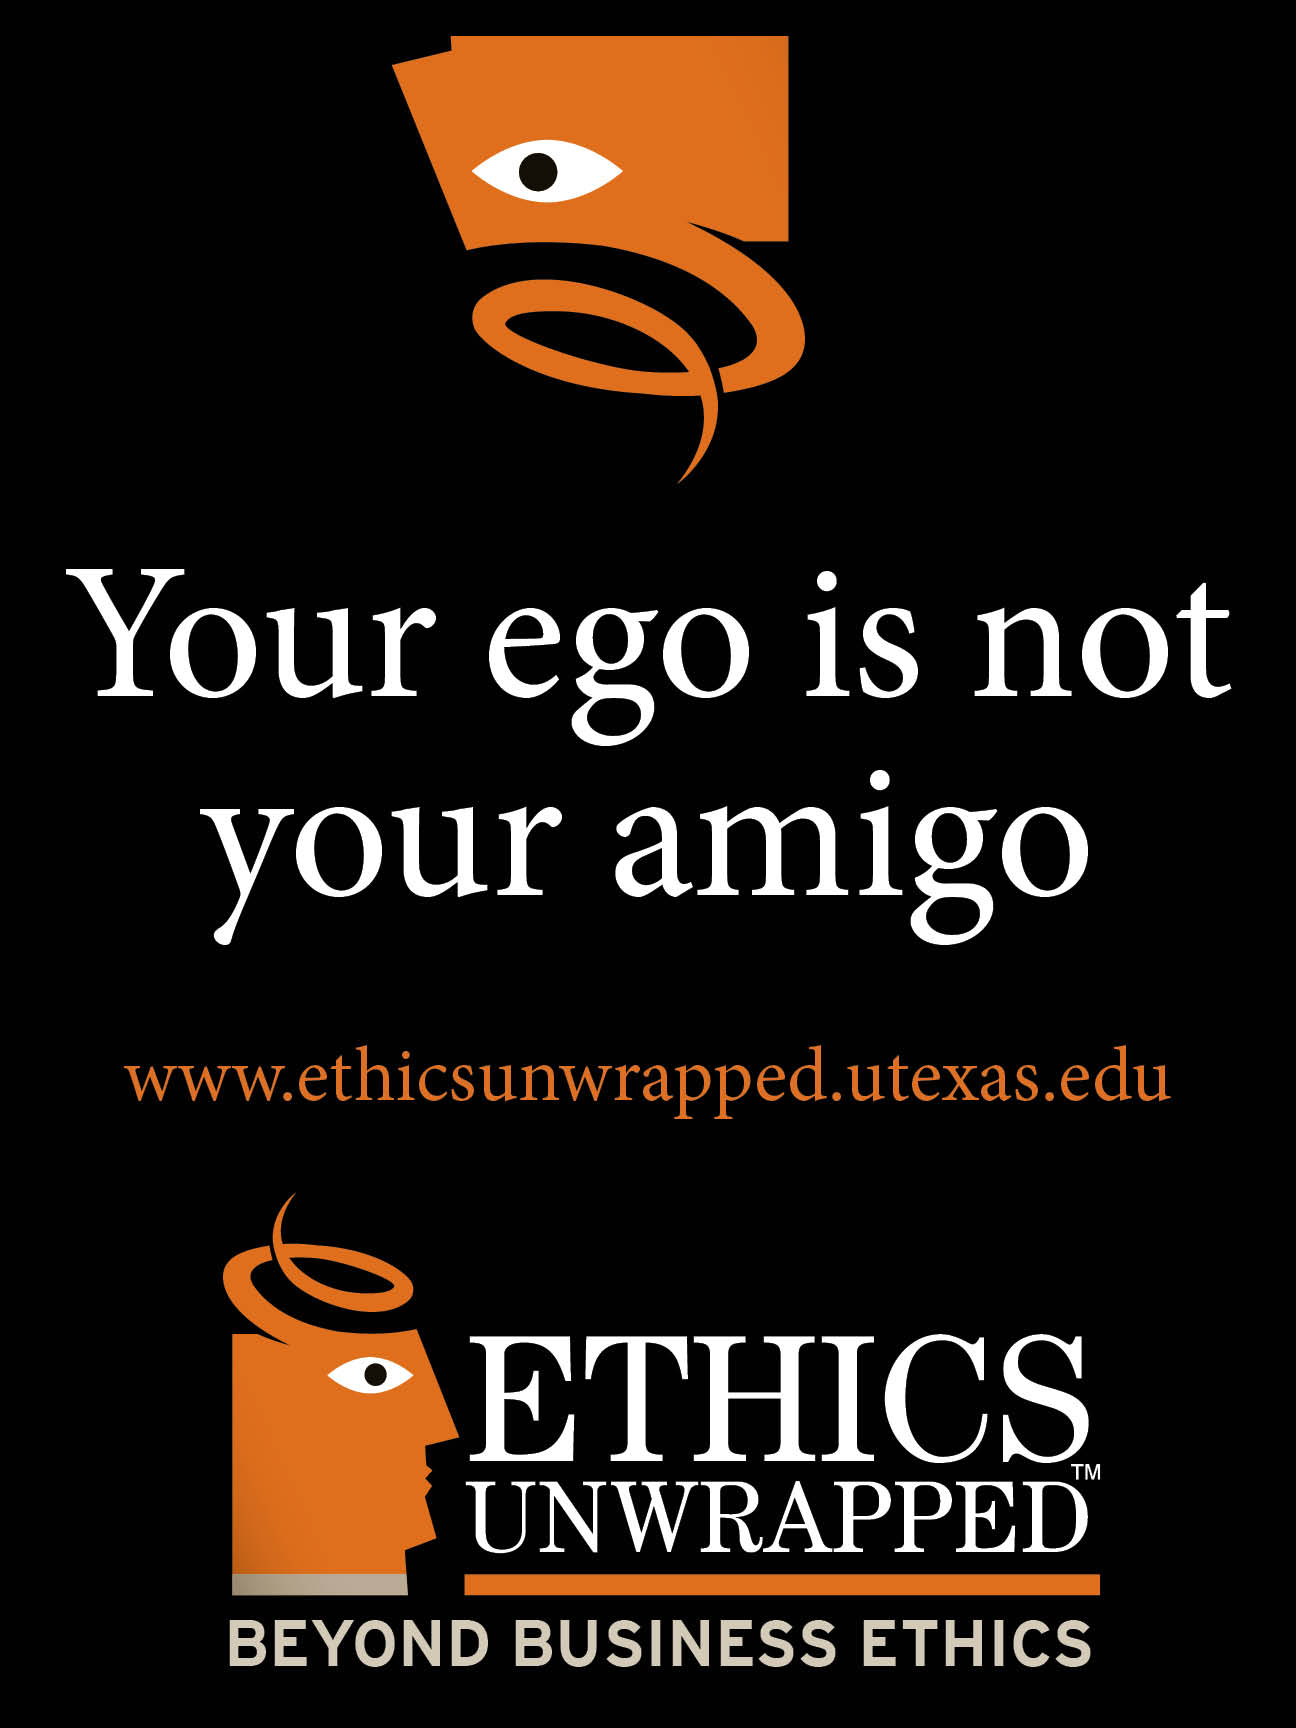 ethics unwrapped